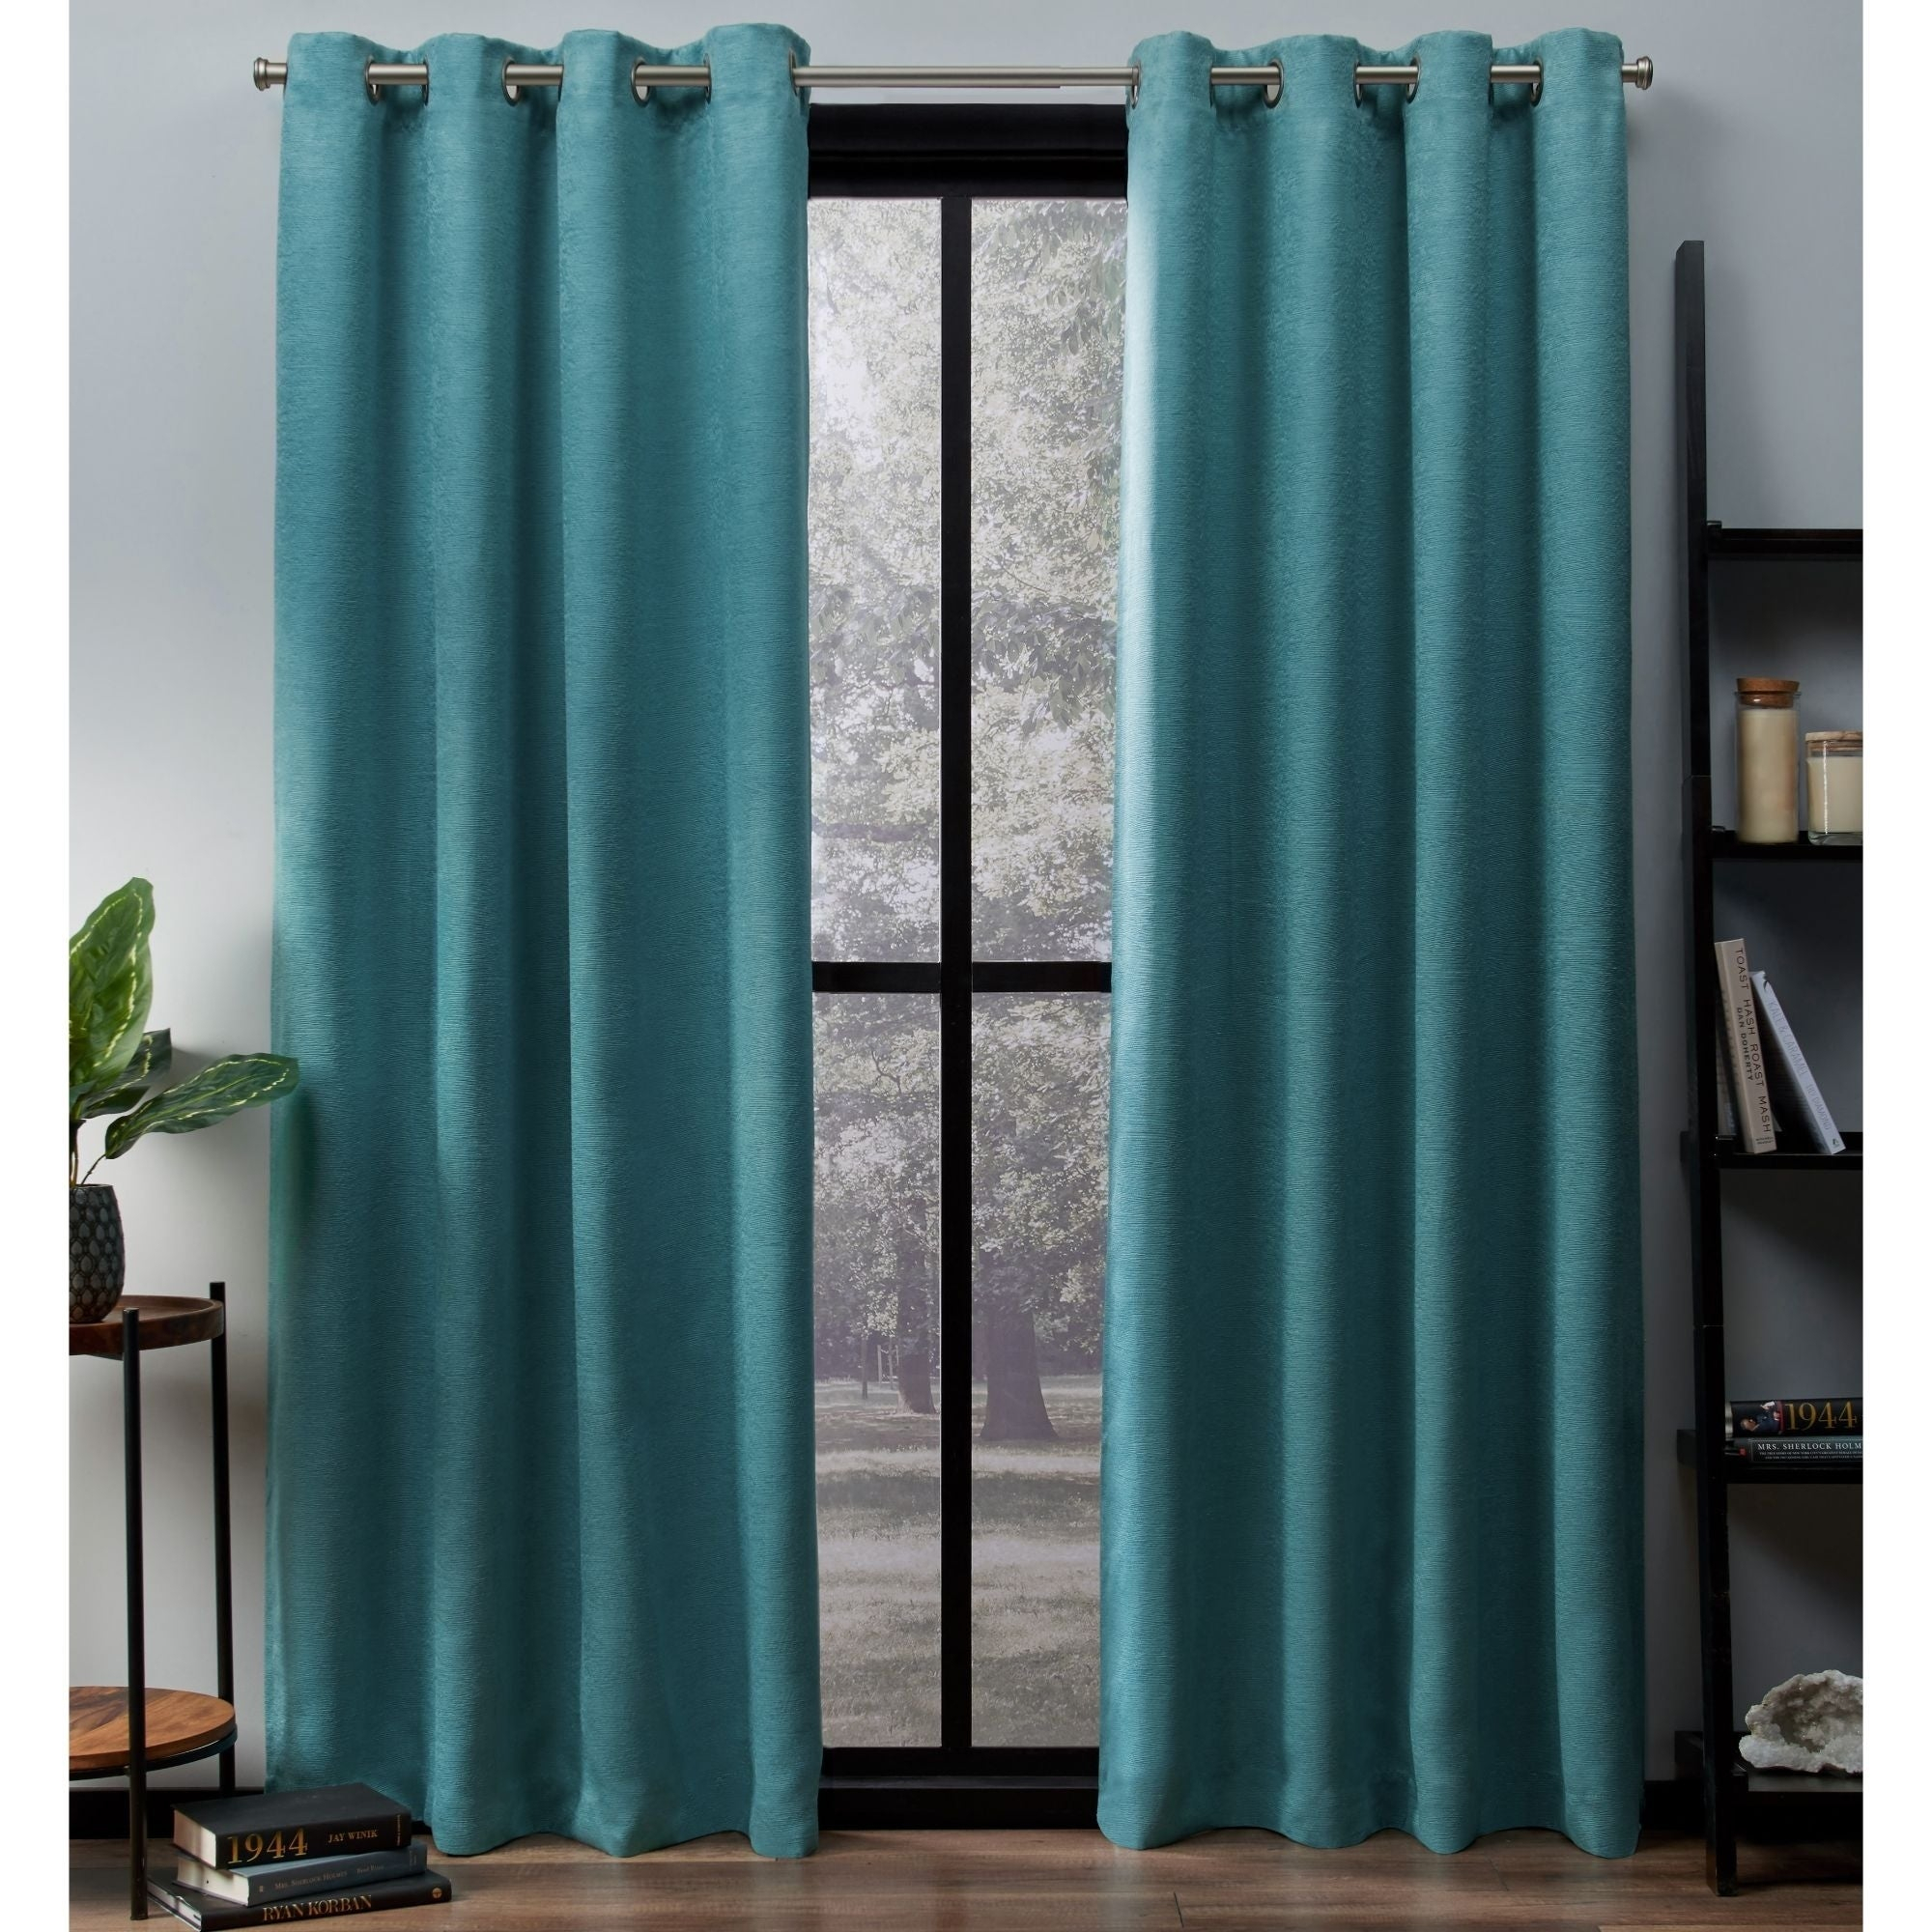 Ati Home Oxford Sateen Woven Blackout Grommet Top Curtain Panel Pair Throughout Oxford Sateen Woven Blackout Grommet Top Curtain Panel Pairs (View 4 of 20)